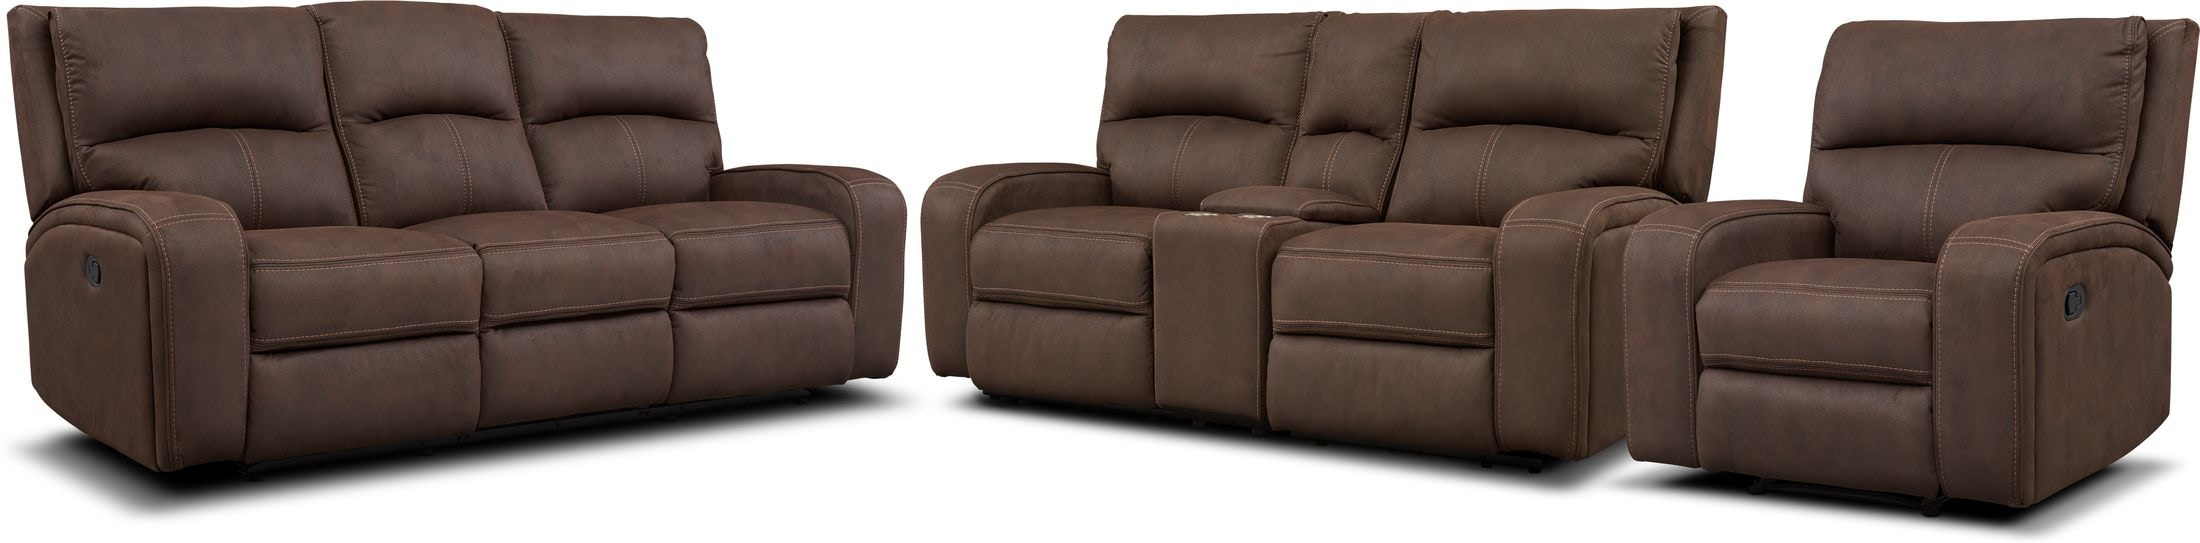 Living Room Furniture - Burke Manual Reclining Sofa, Loveseat with Console and Recliner